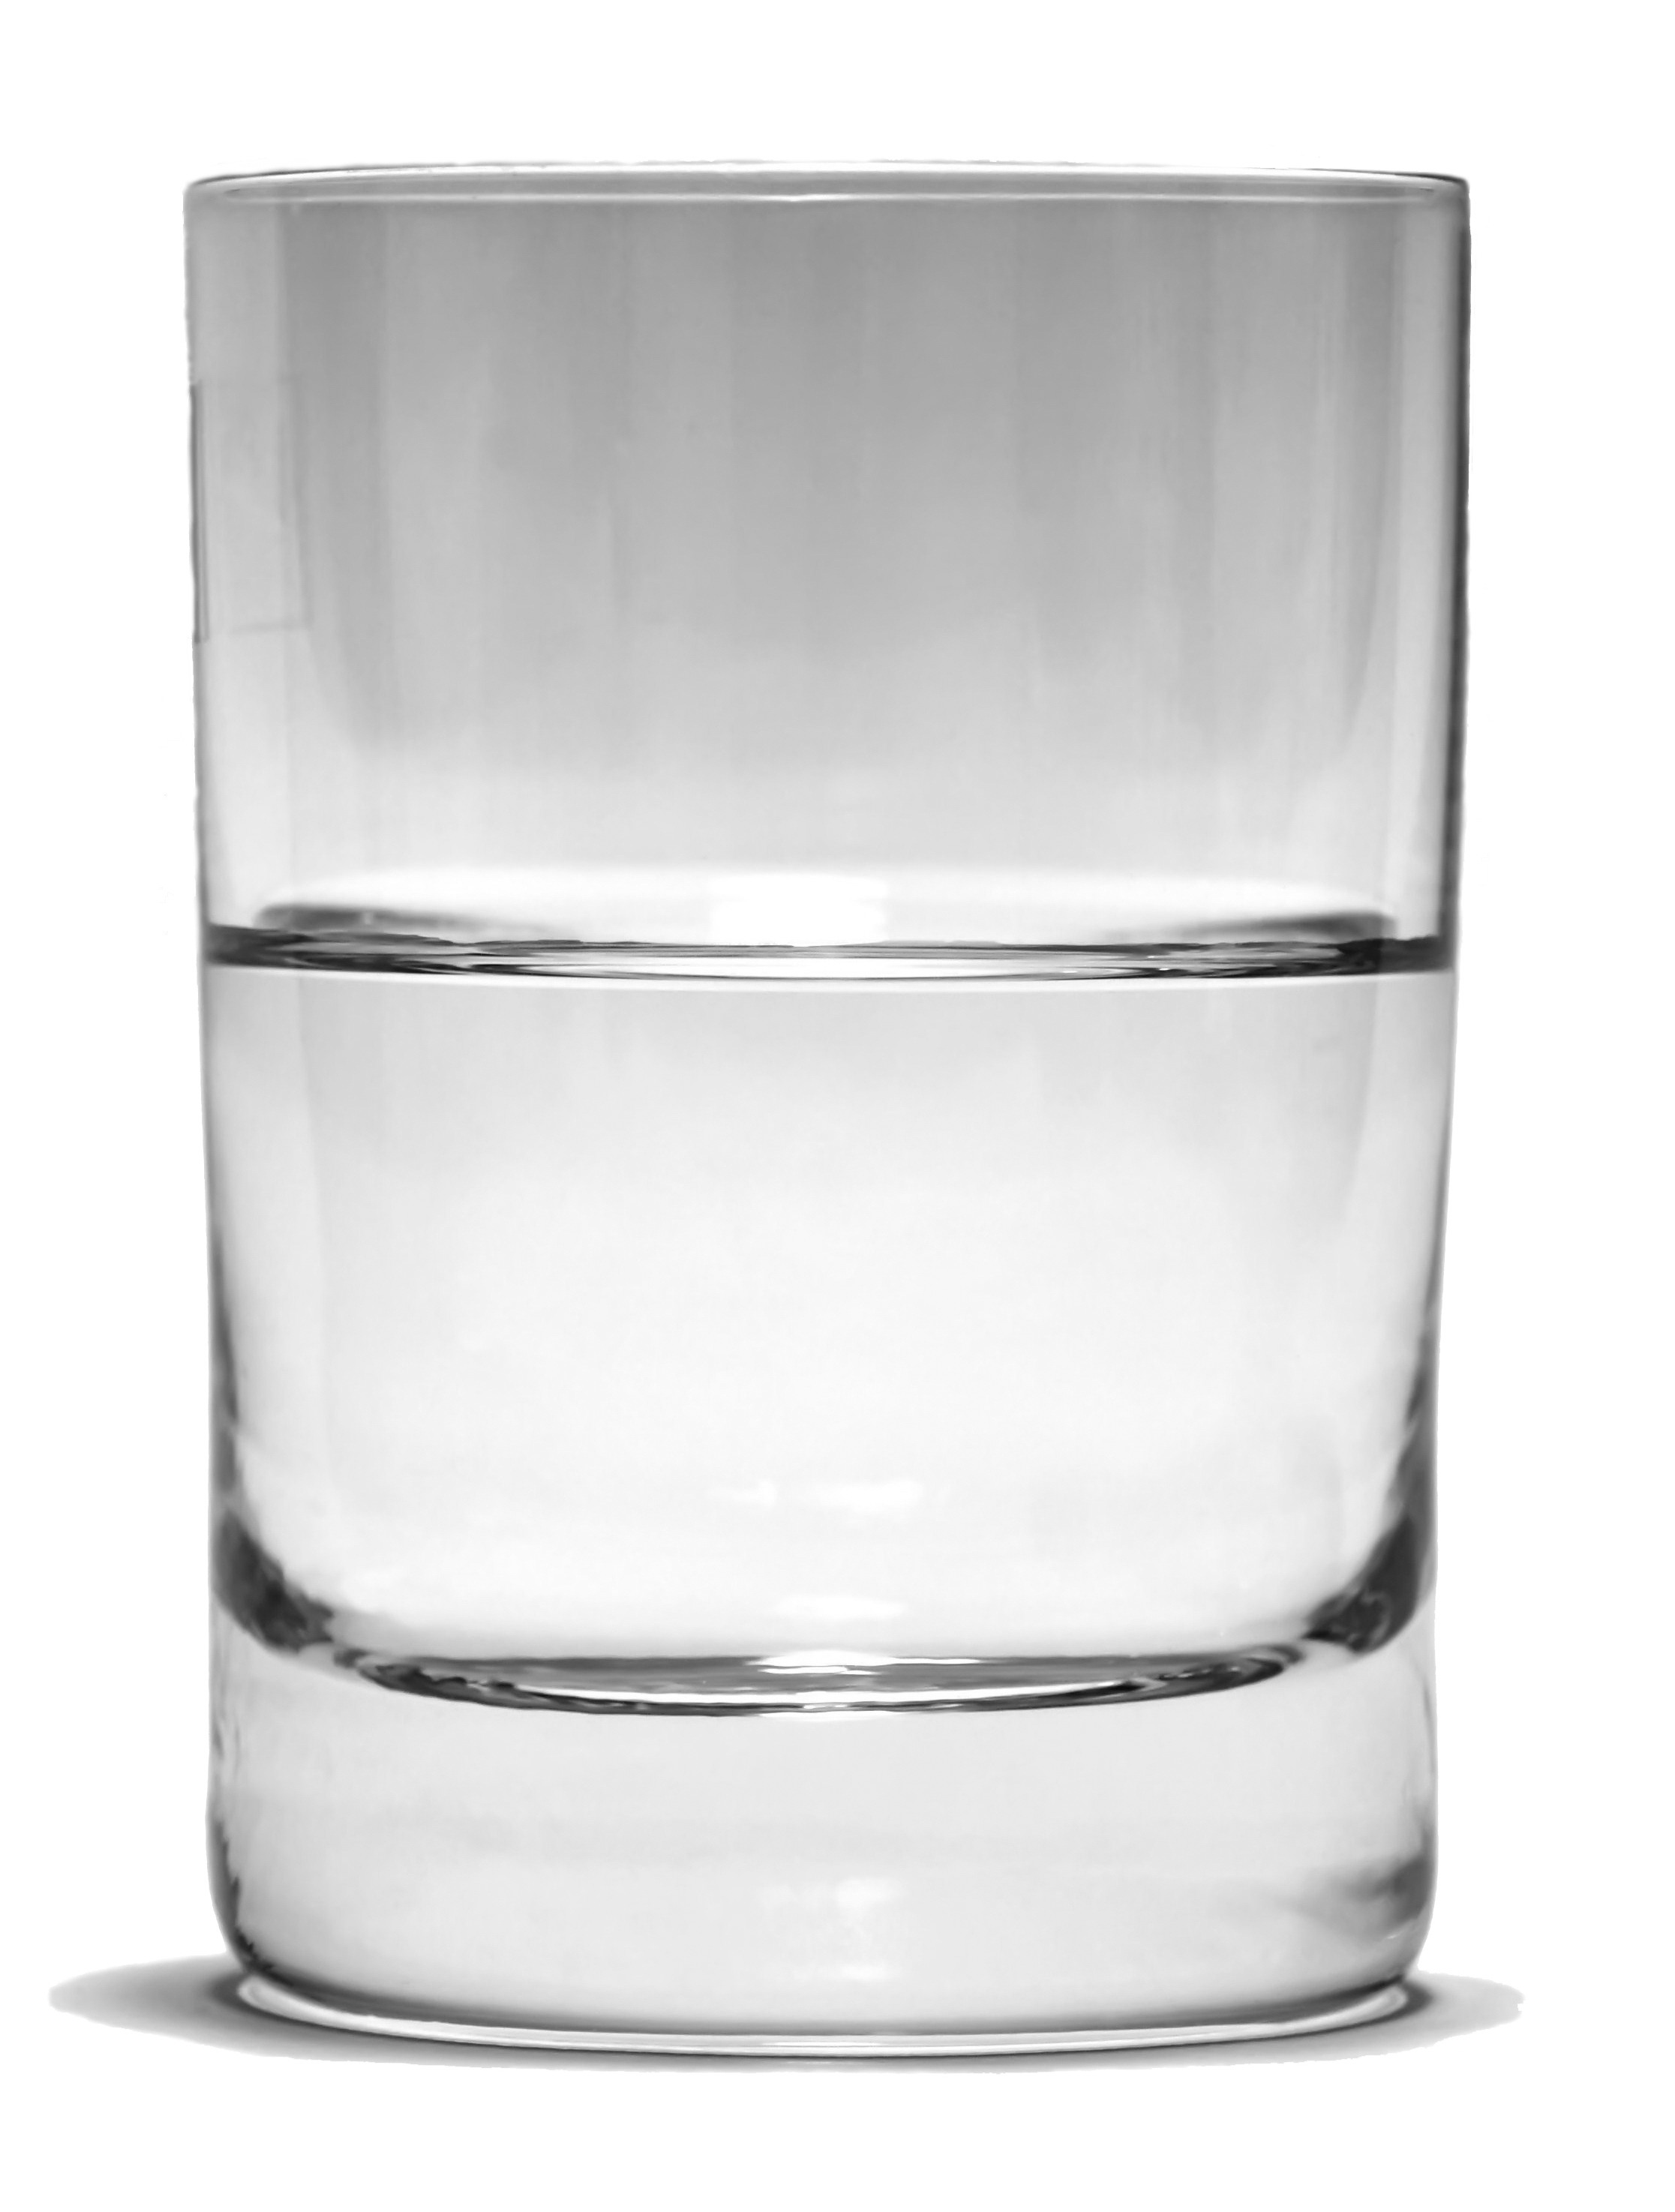 http://upload.wikimedia.org/wikipedia/commons/a/a4/Glass_Half_Full_bw_1.JPG